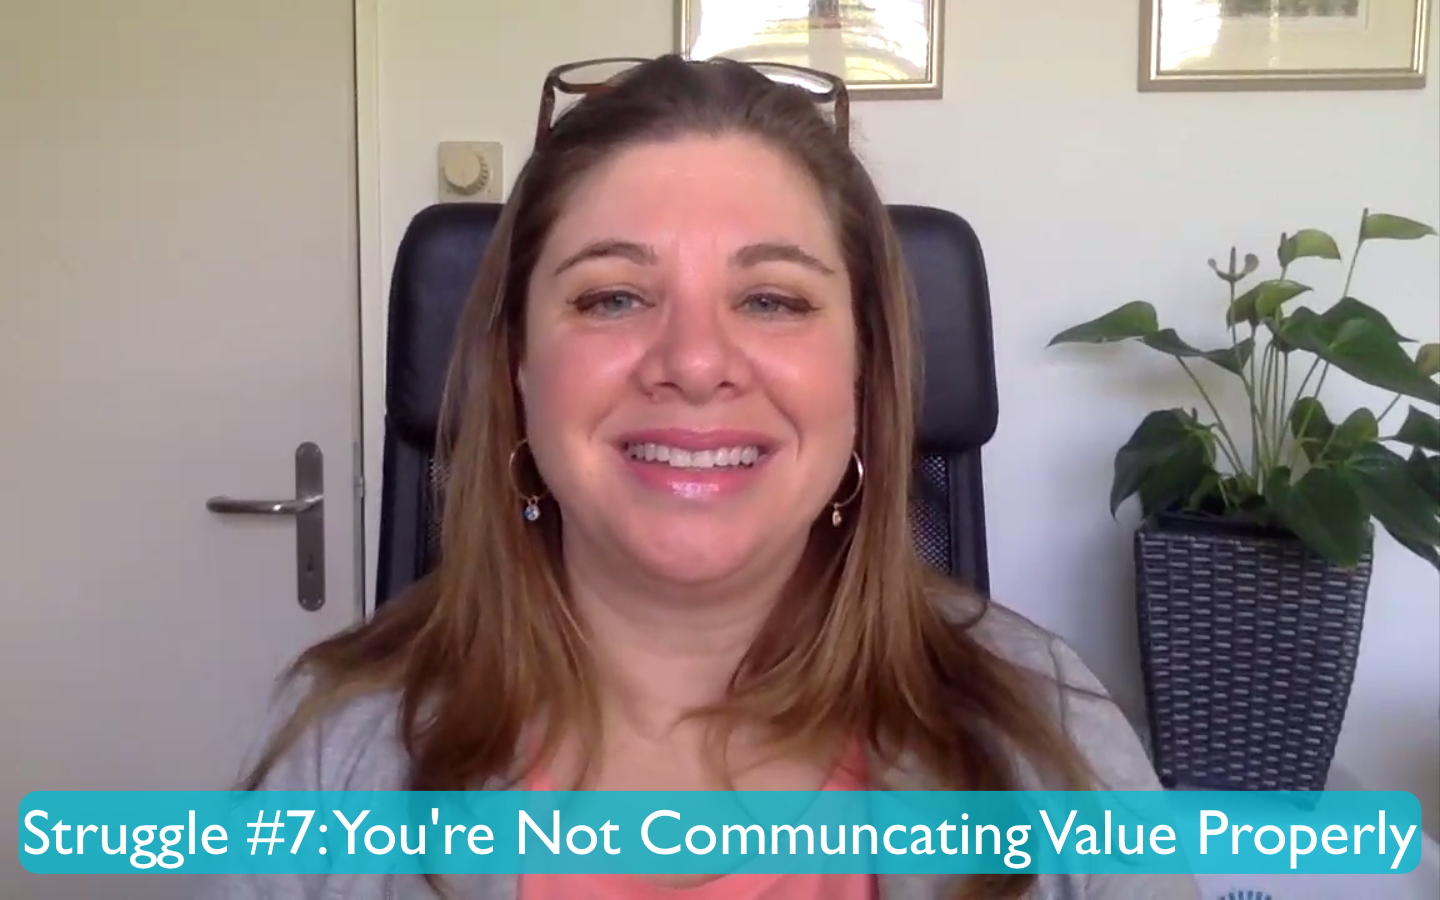 You're Not Communicating Value Properly